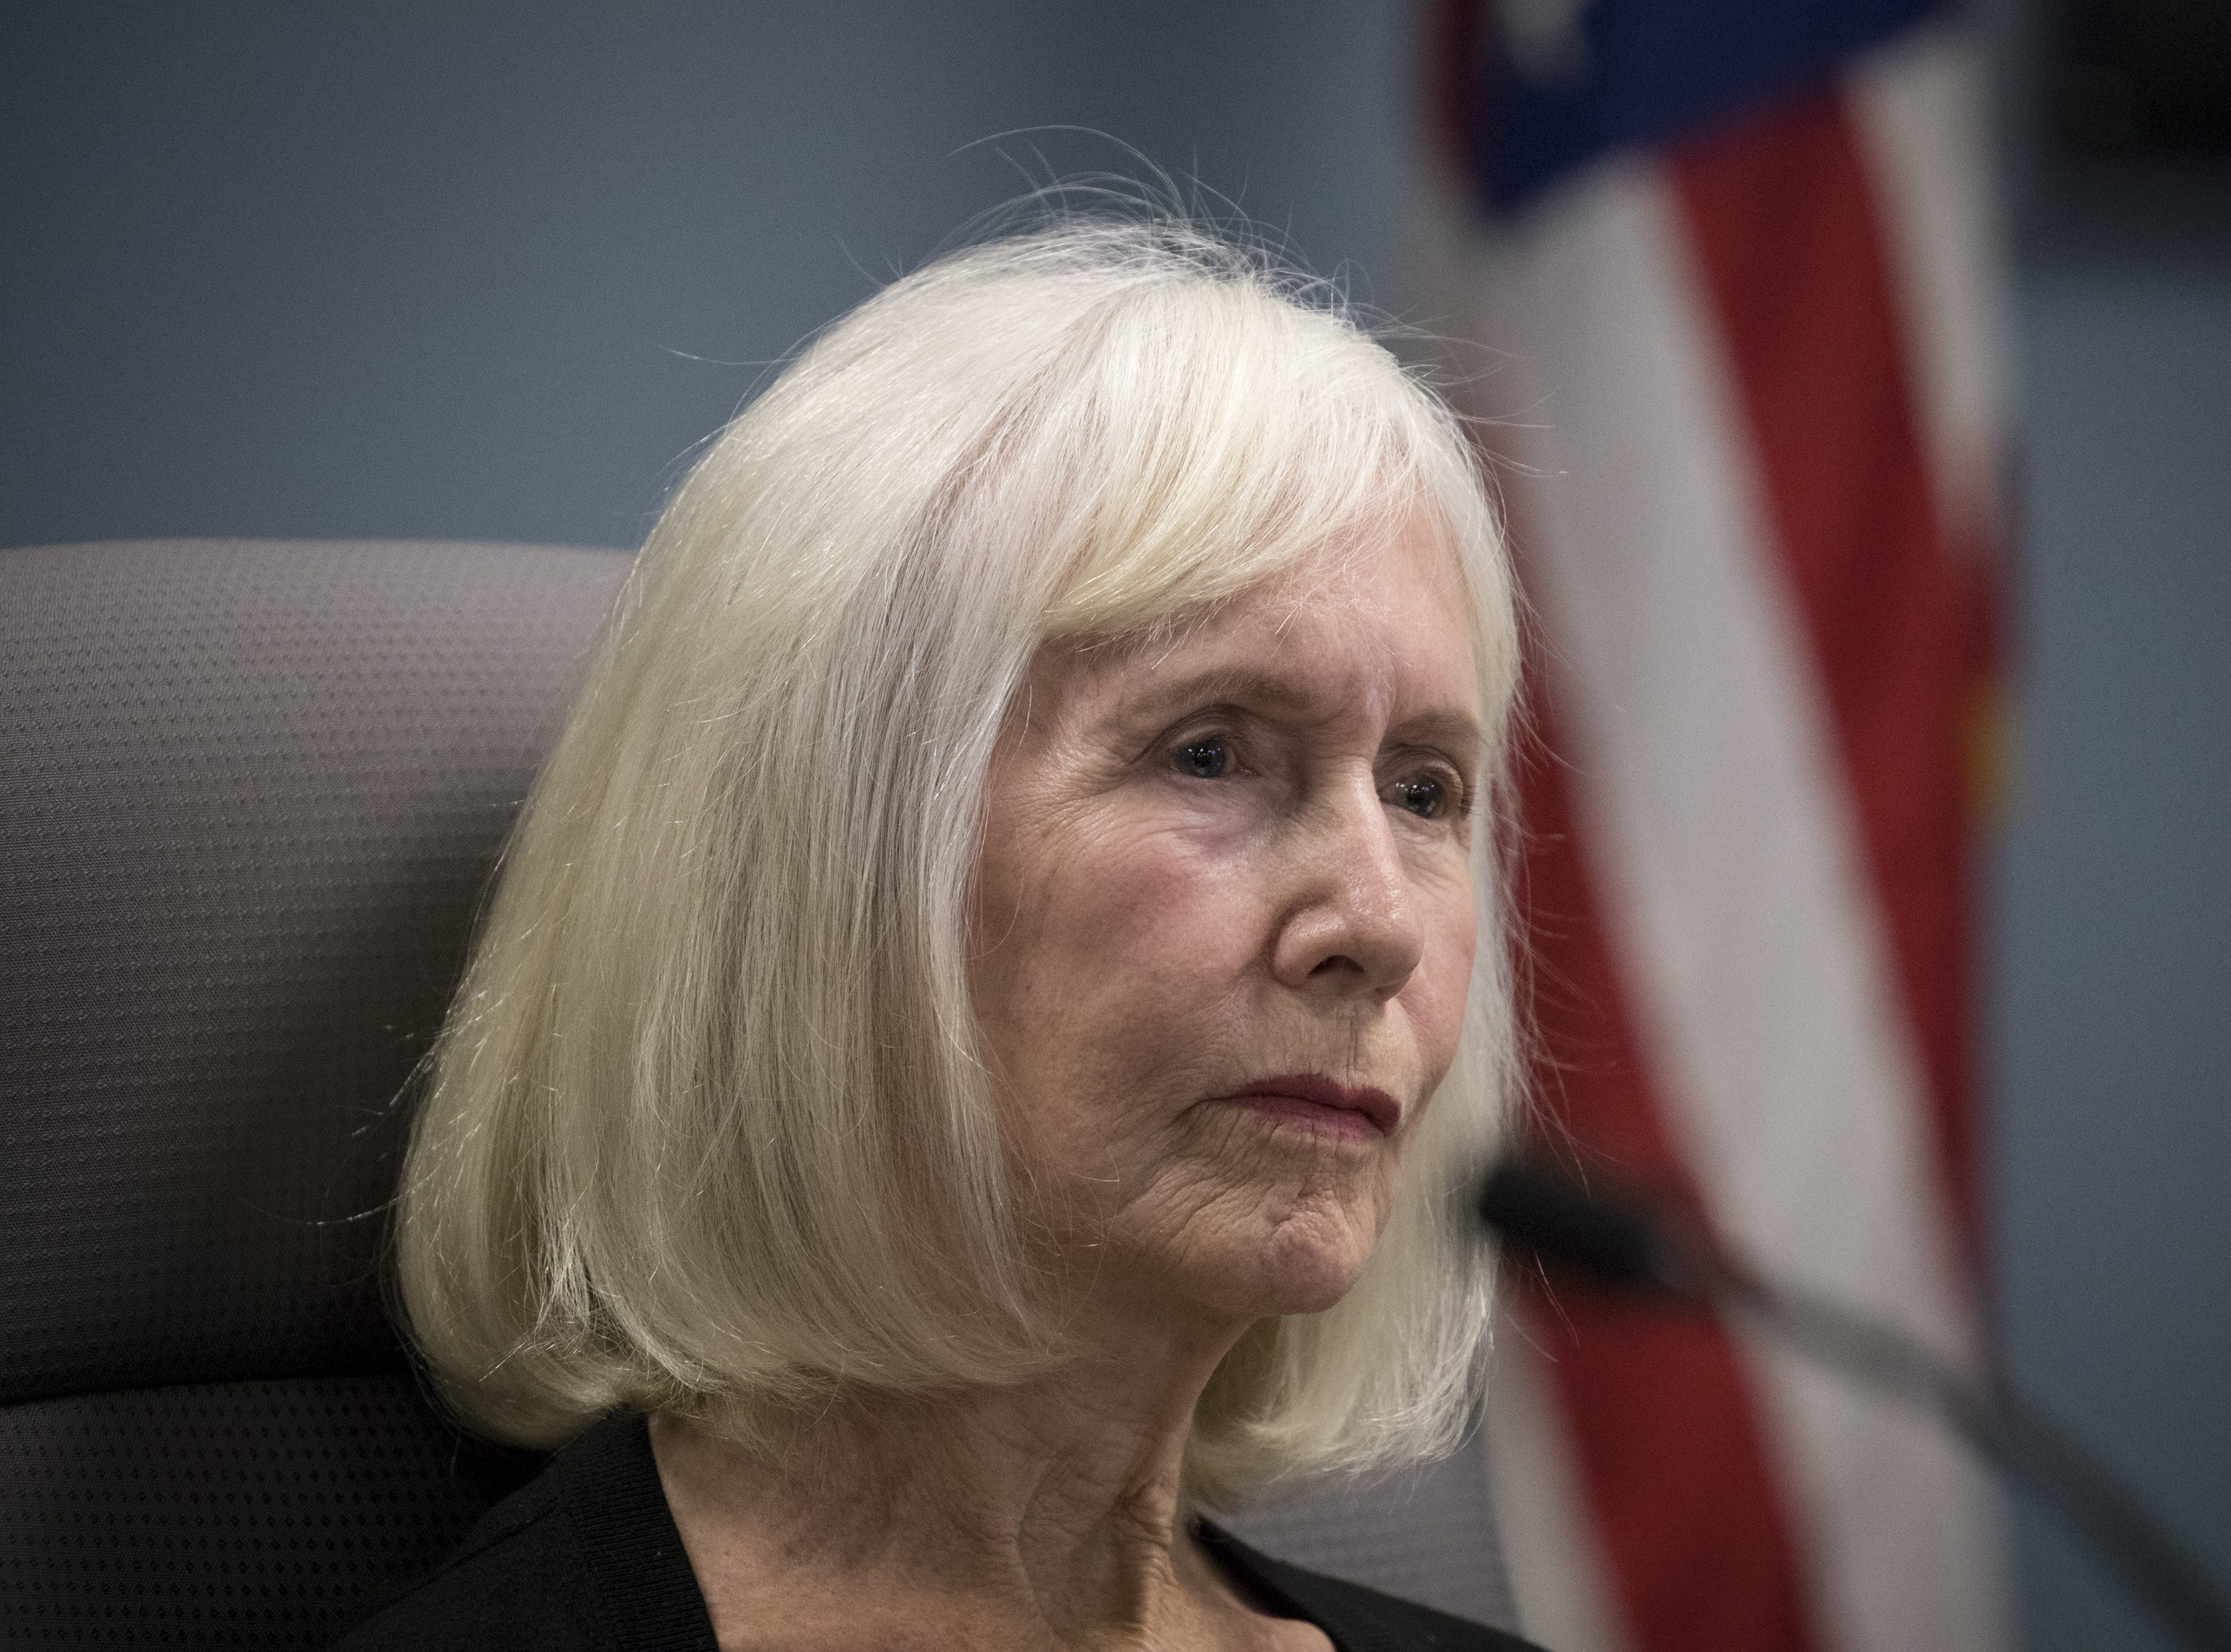 Carol Crockett, a public member, listens during an Arizona State Board for Charter Schools meeting on Sept. 10, 2018, at the Arizona Department of Education in Phoenix.